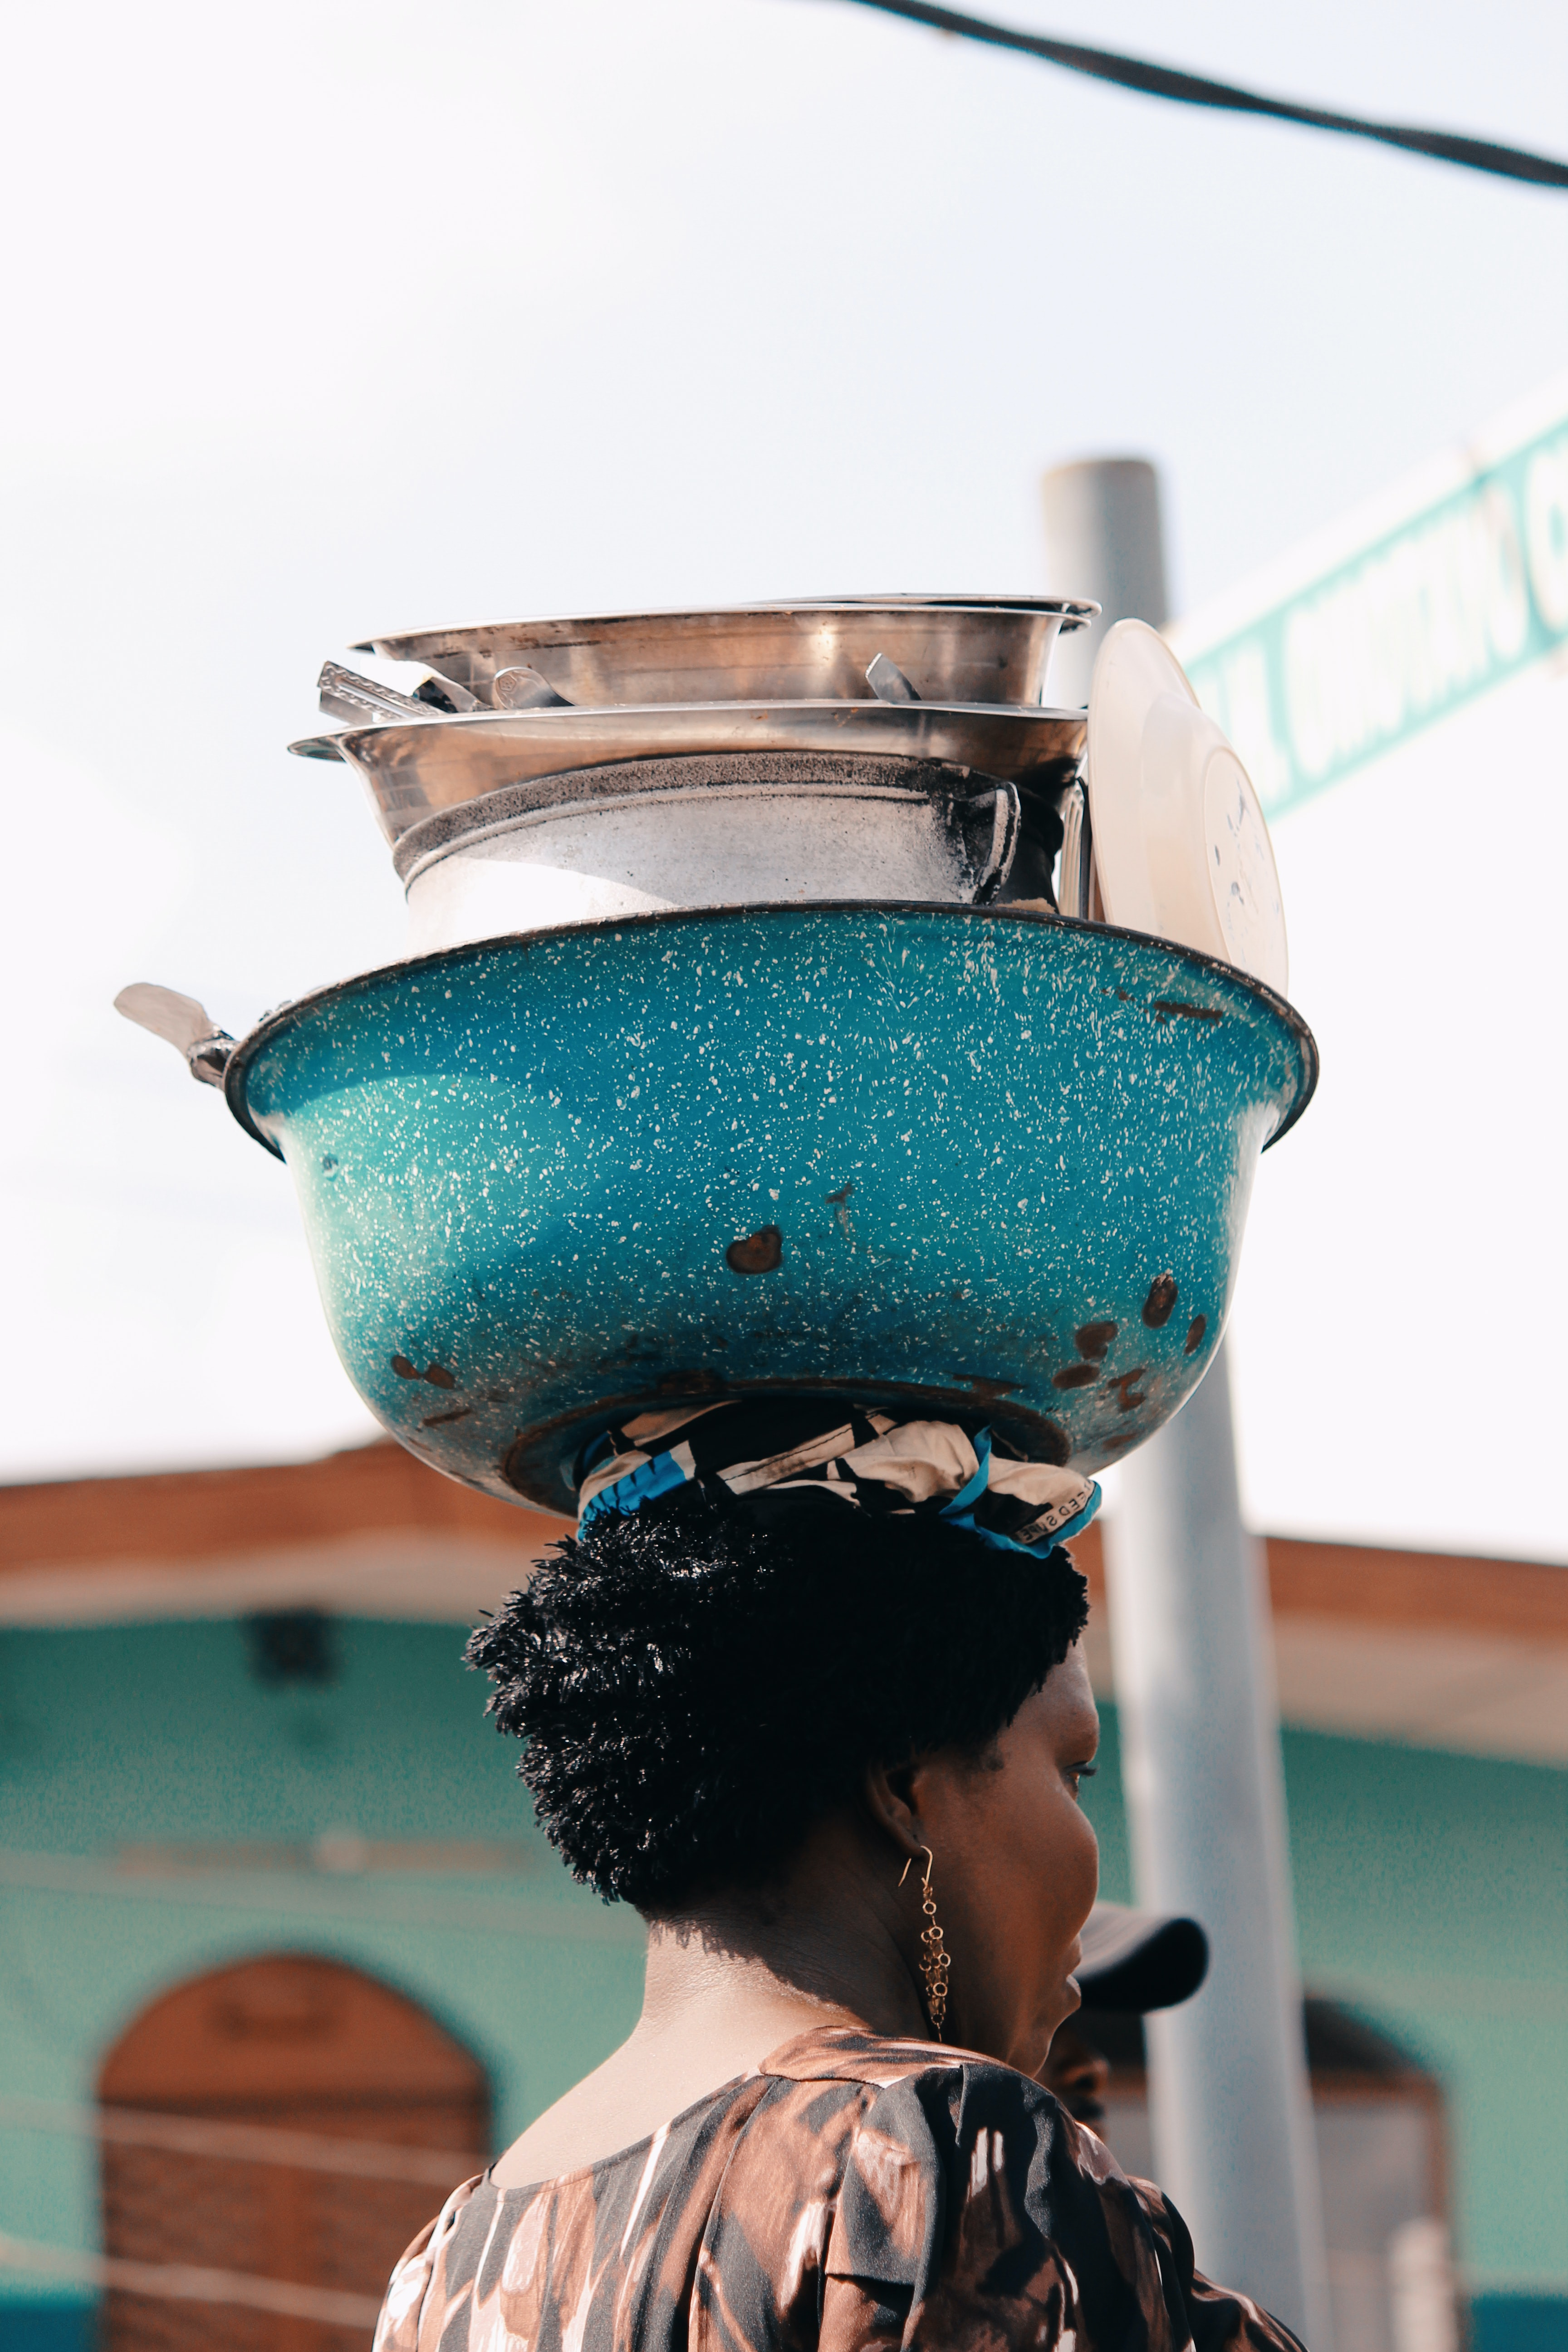 teal steel bowl on woman's head